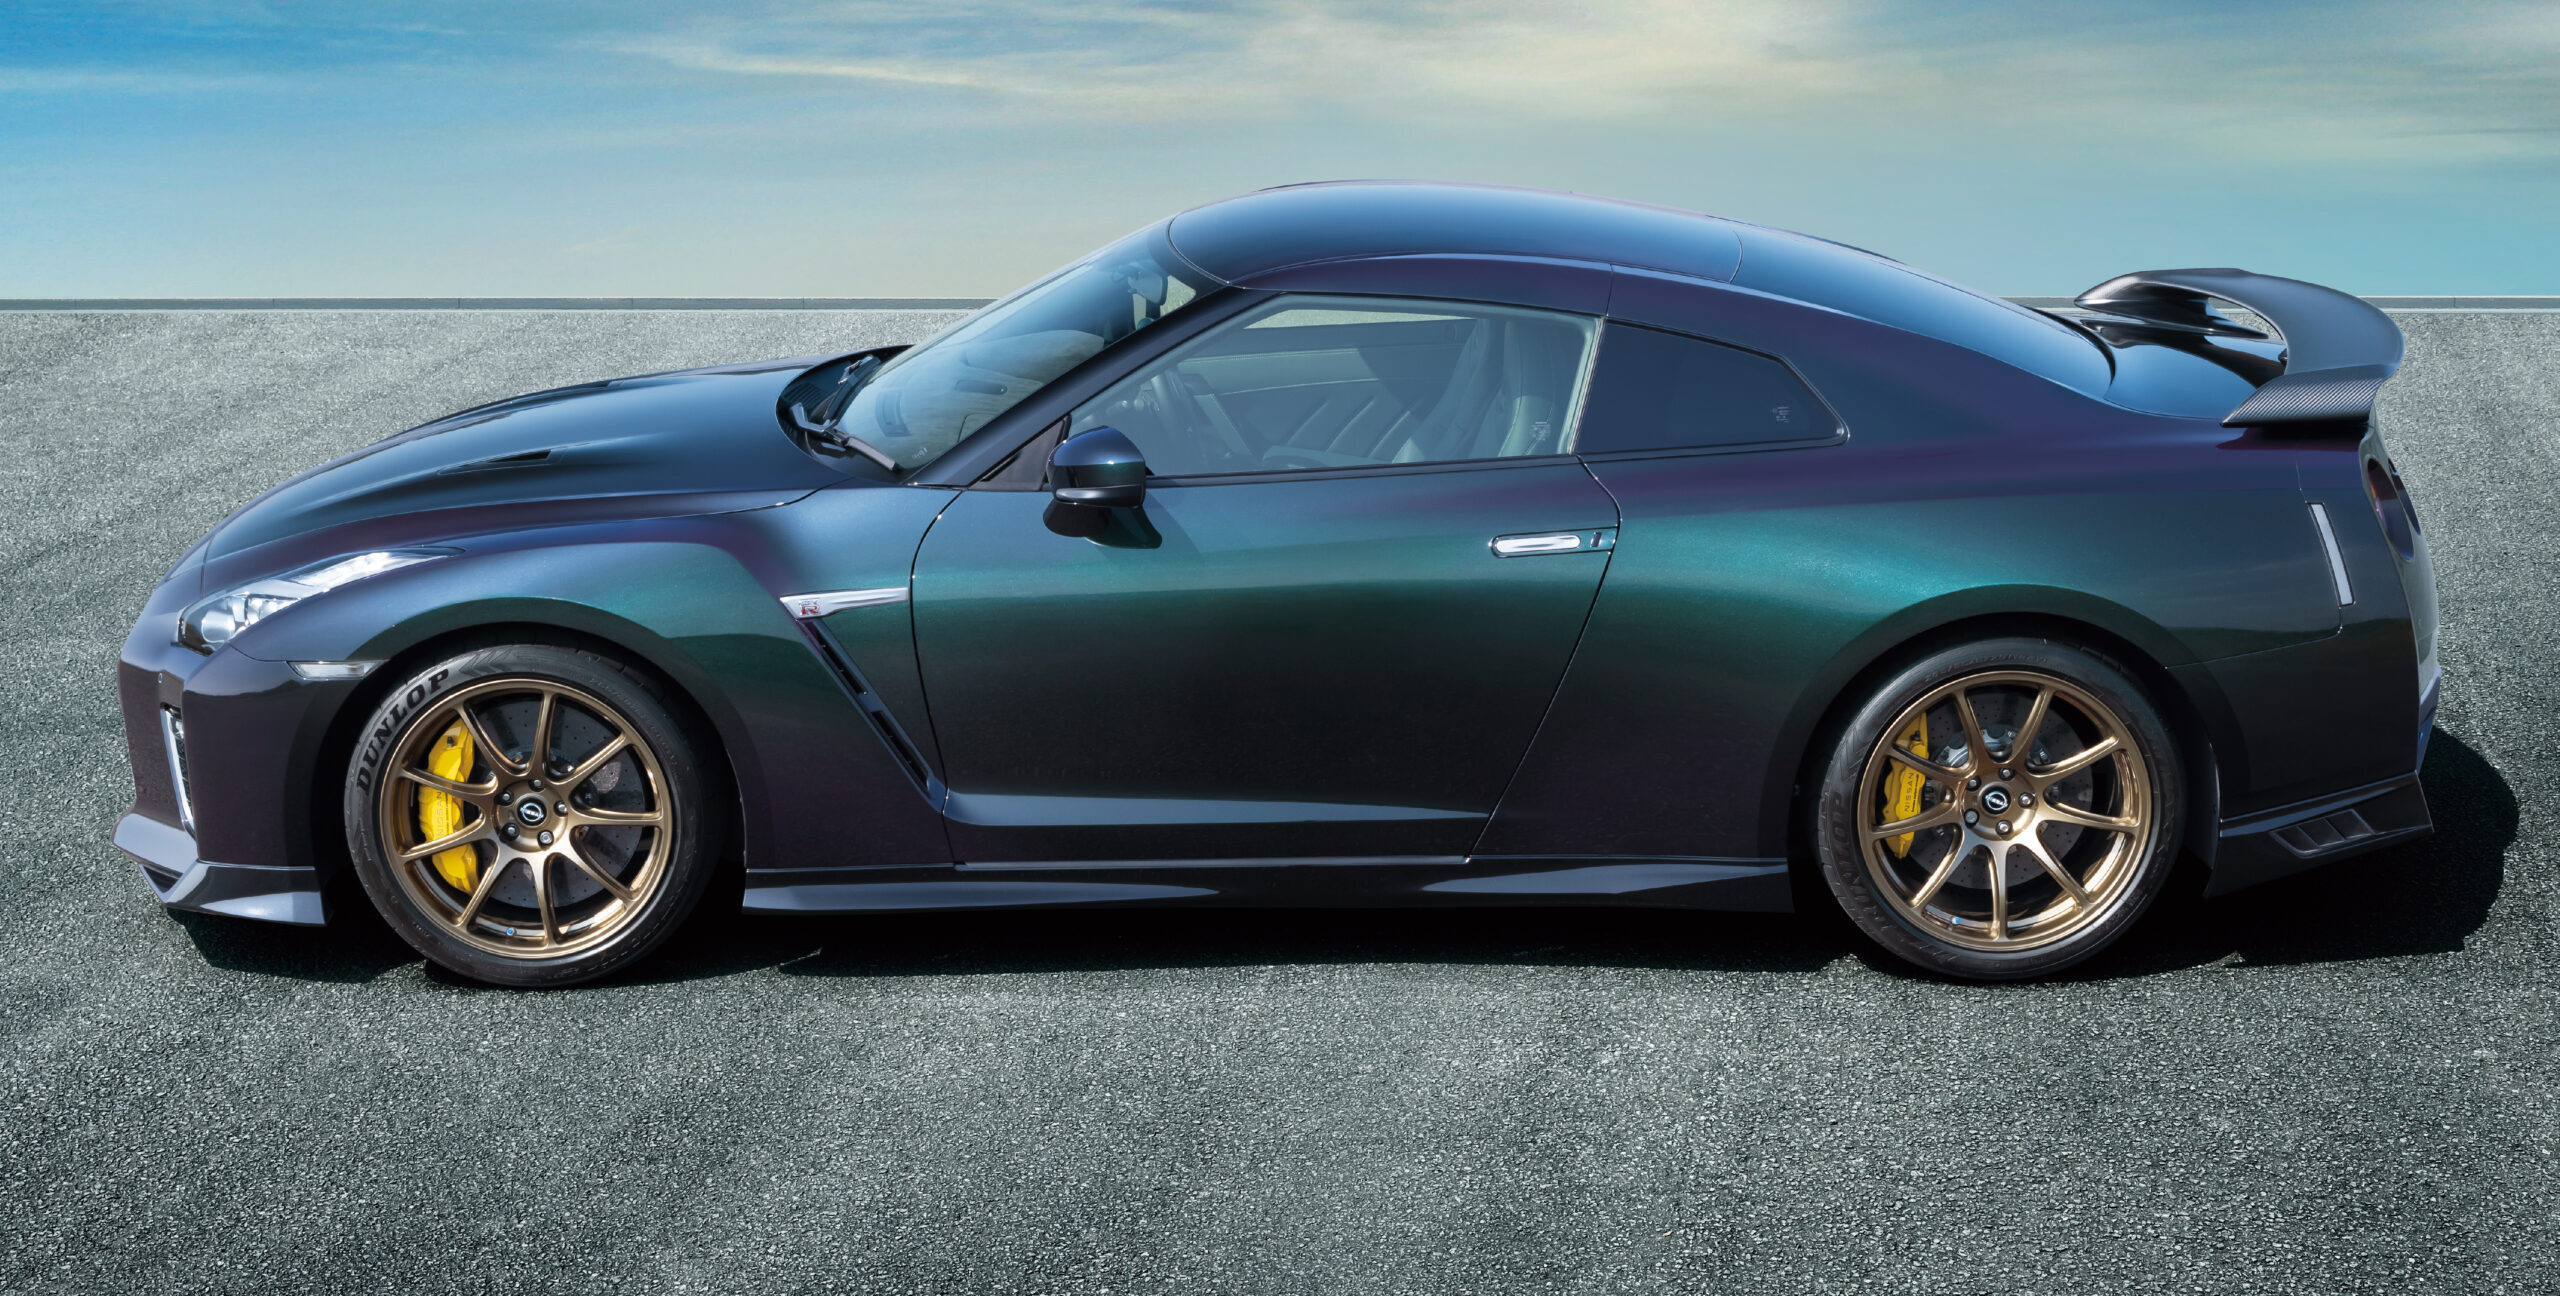 A side view of the Nissan GT R R 35 T